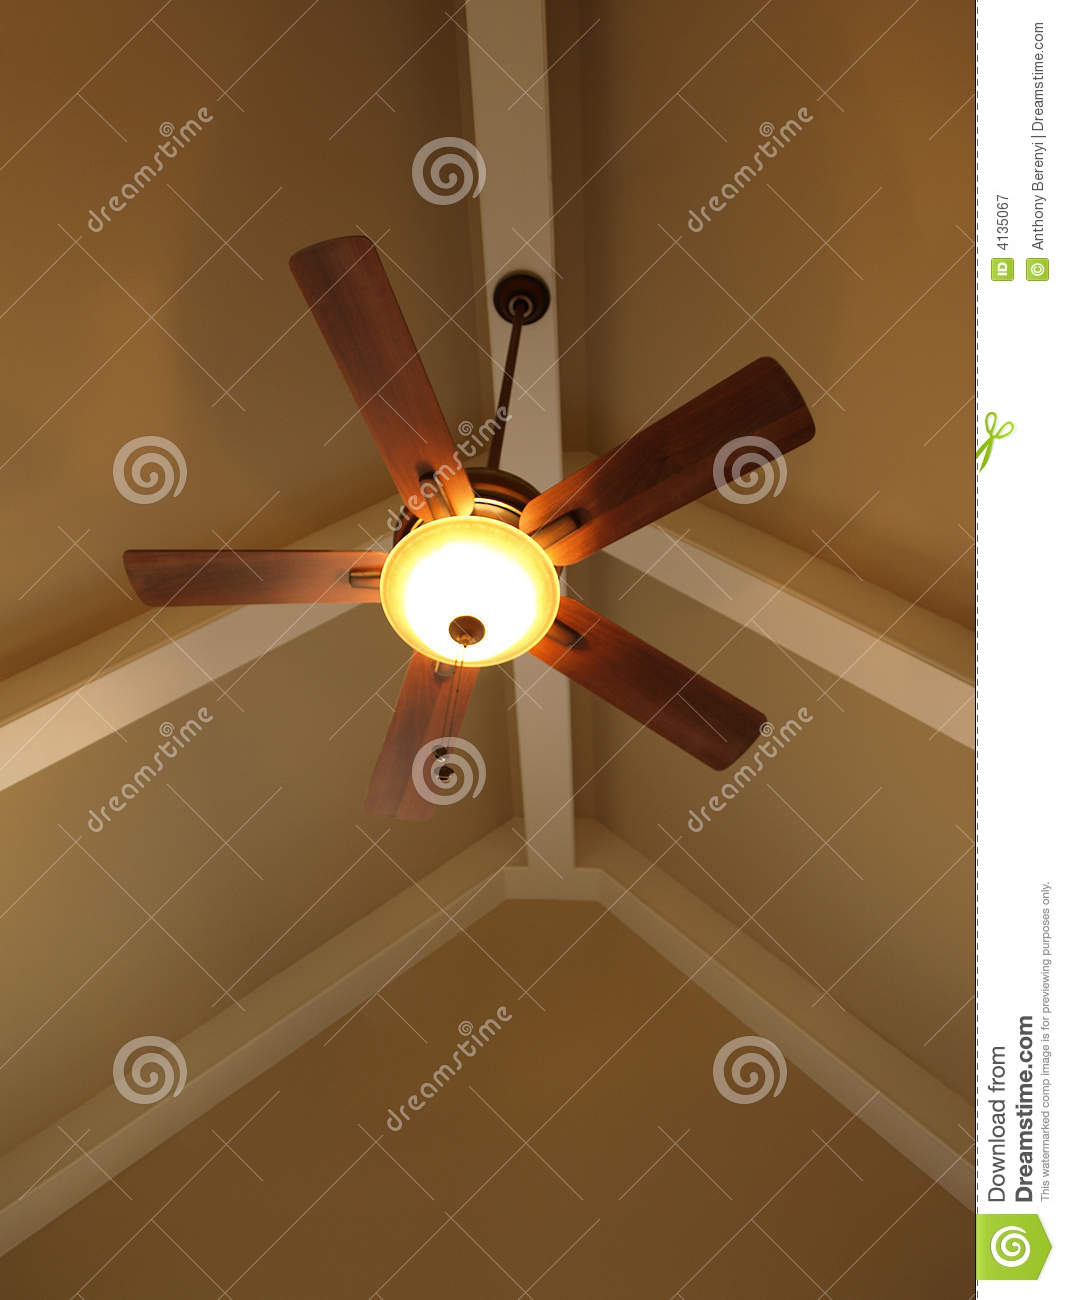 Propeller Ceiling Fan Ceiling Fan In Vaulted Ceiling Stock Image - Image Of